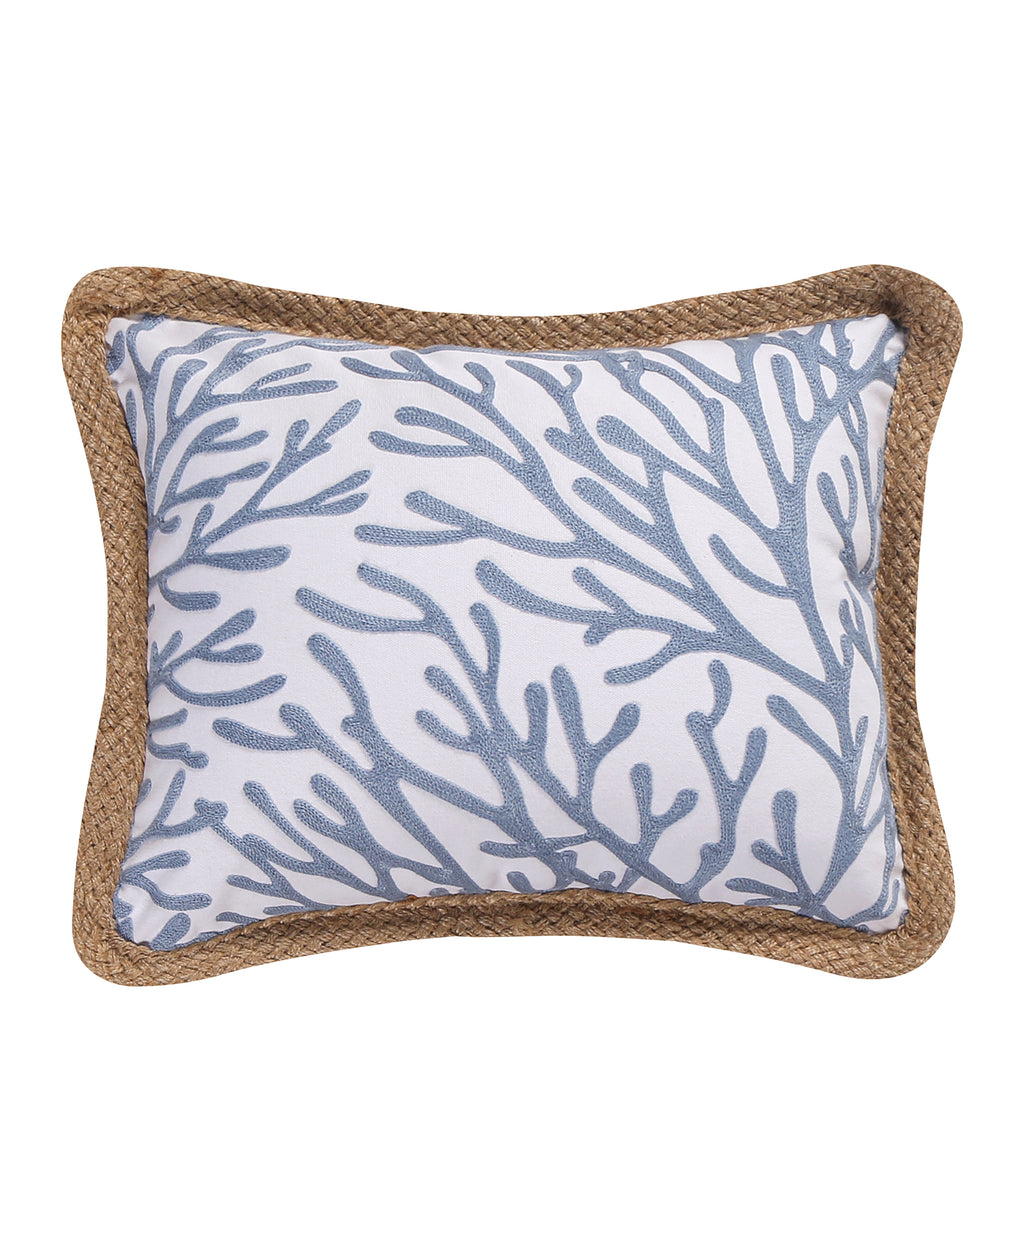 Crete Crewel Canvas Rope Trim Pillow